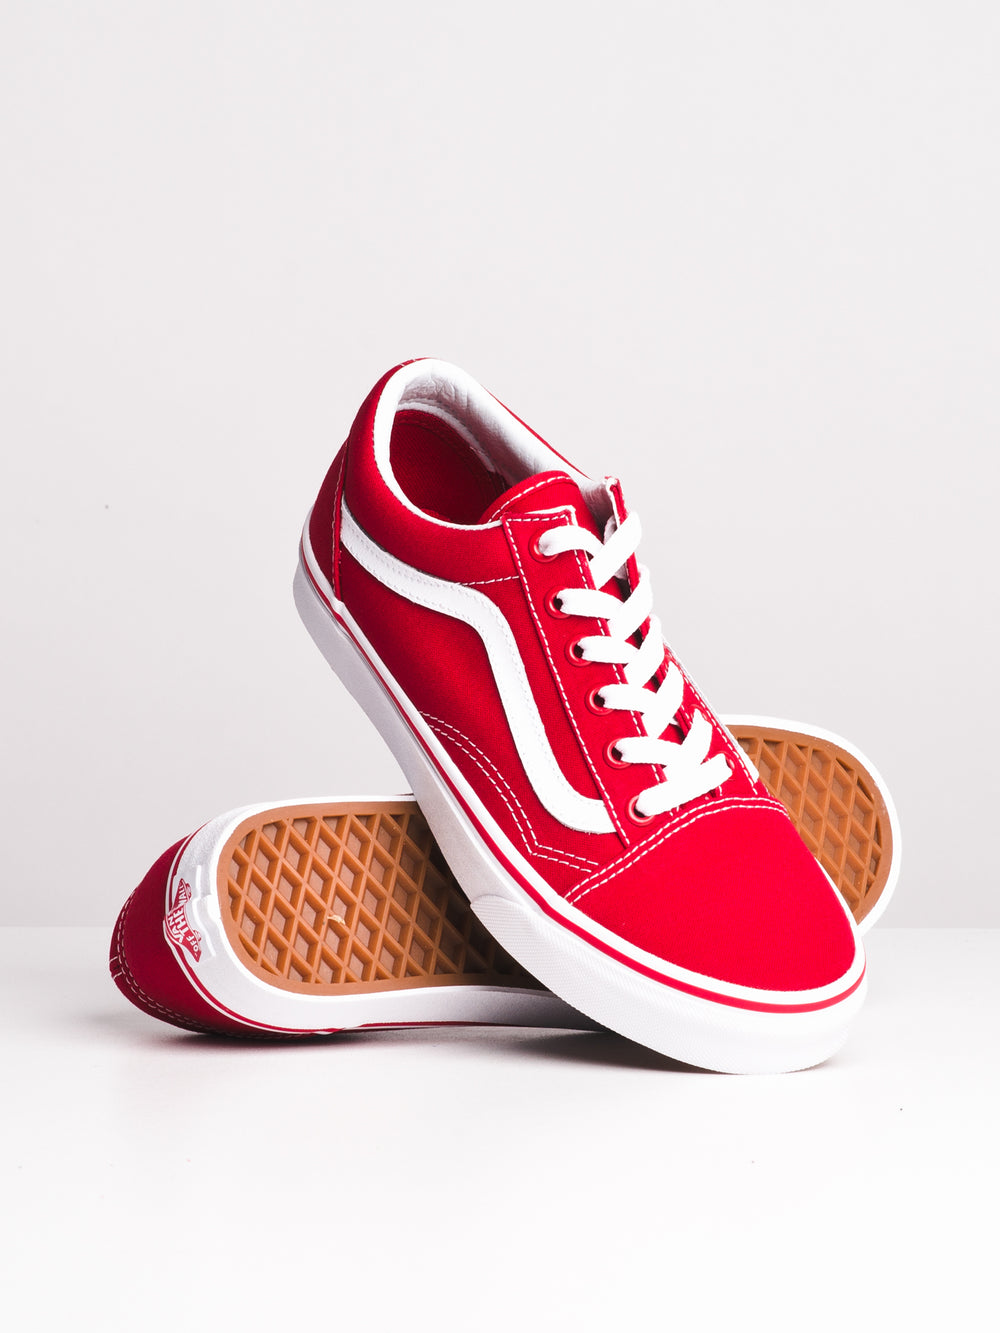 WOMENS OLD SKOOL - FORMULA ONE